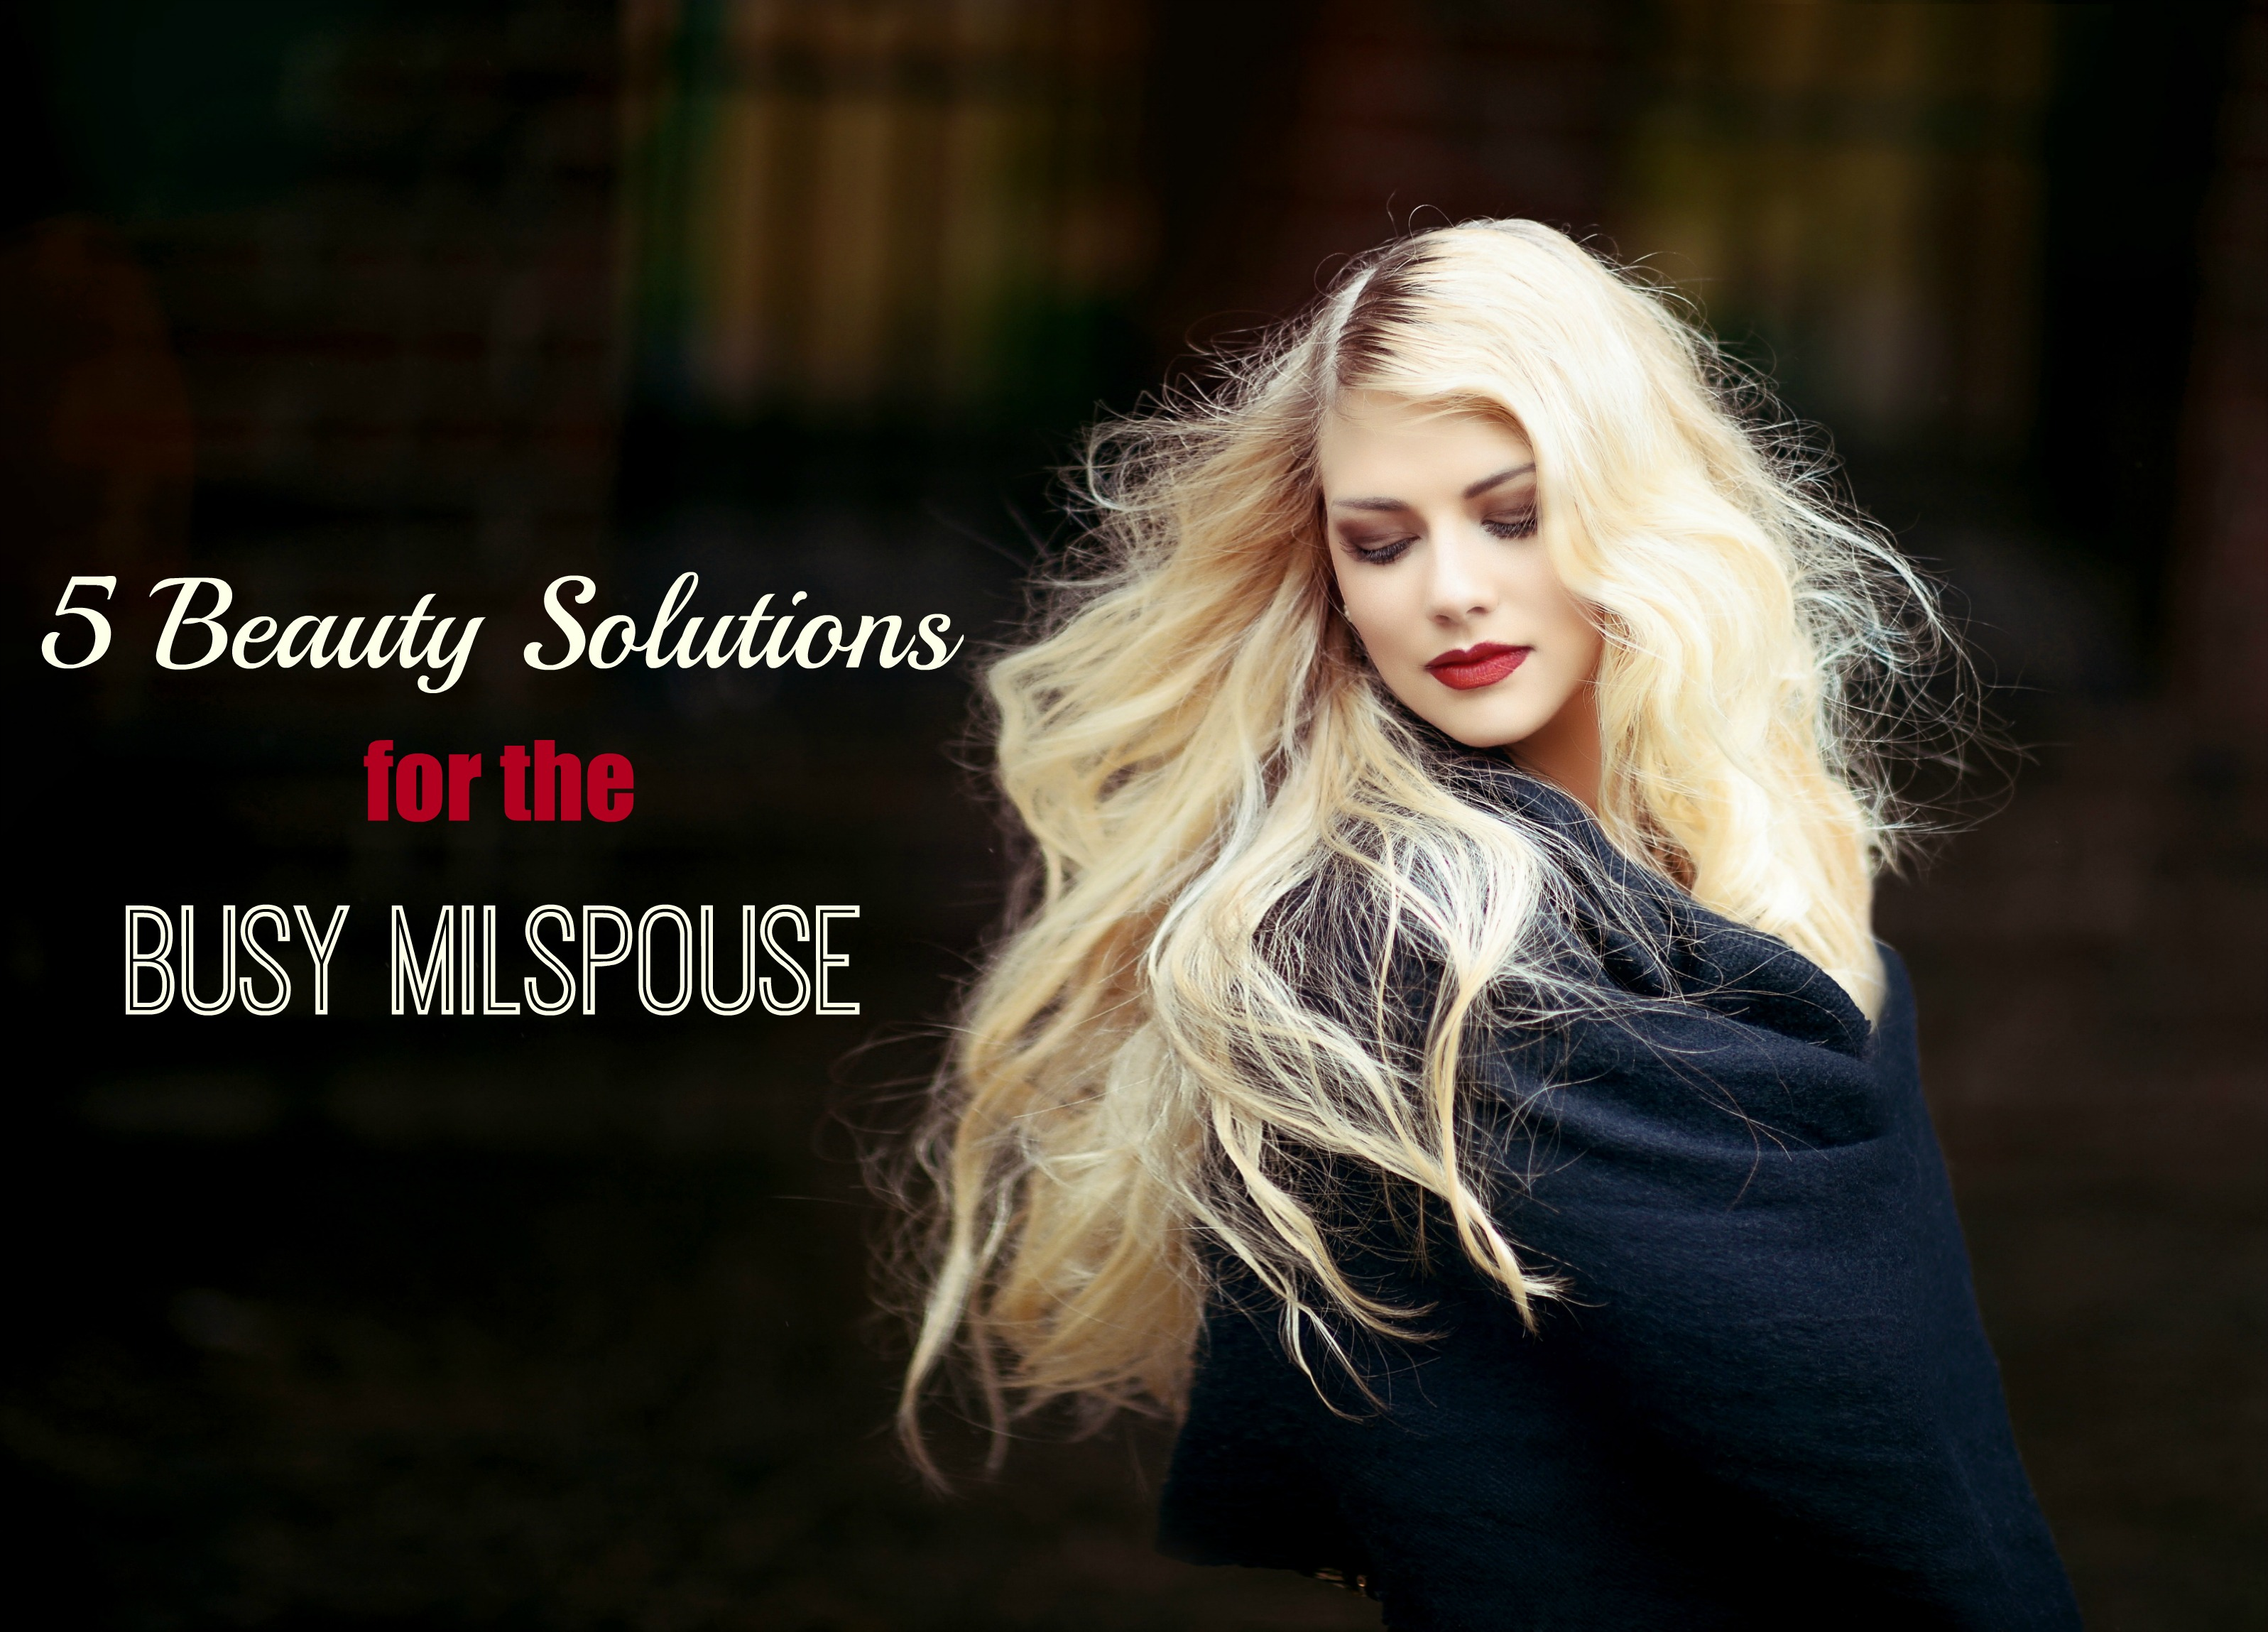 5 Beauty Solutions for the Busy Milspouse